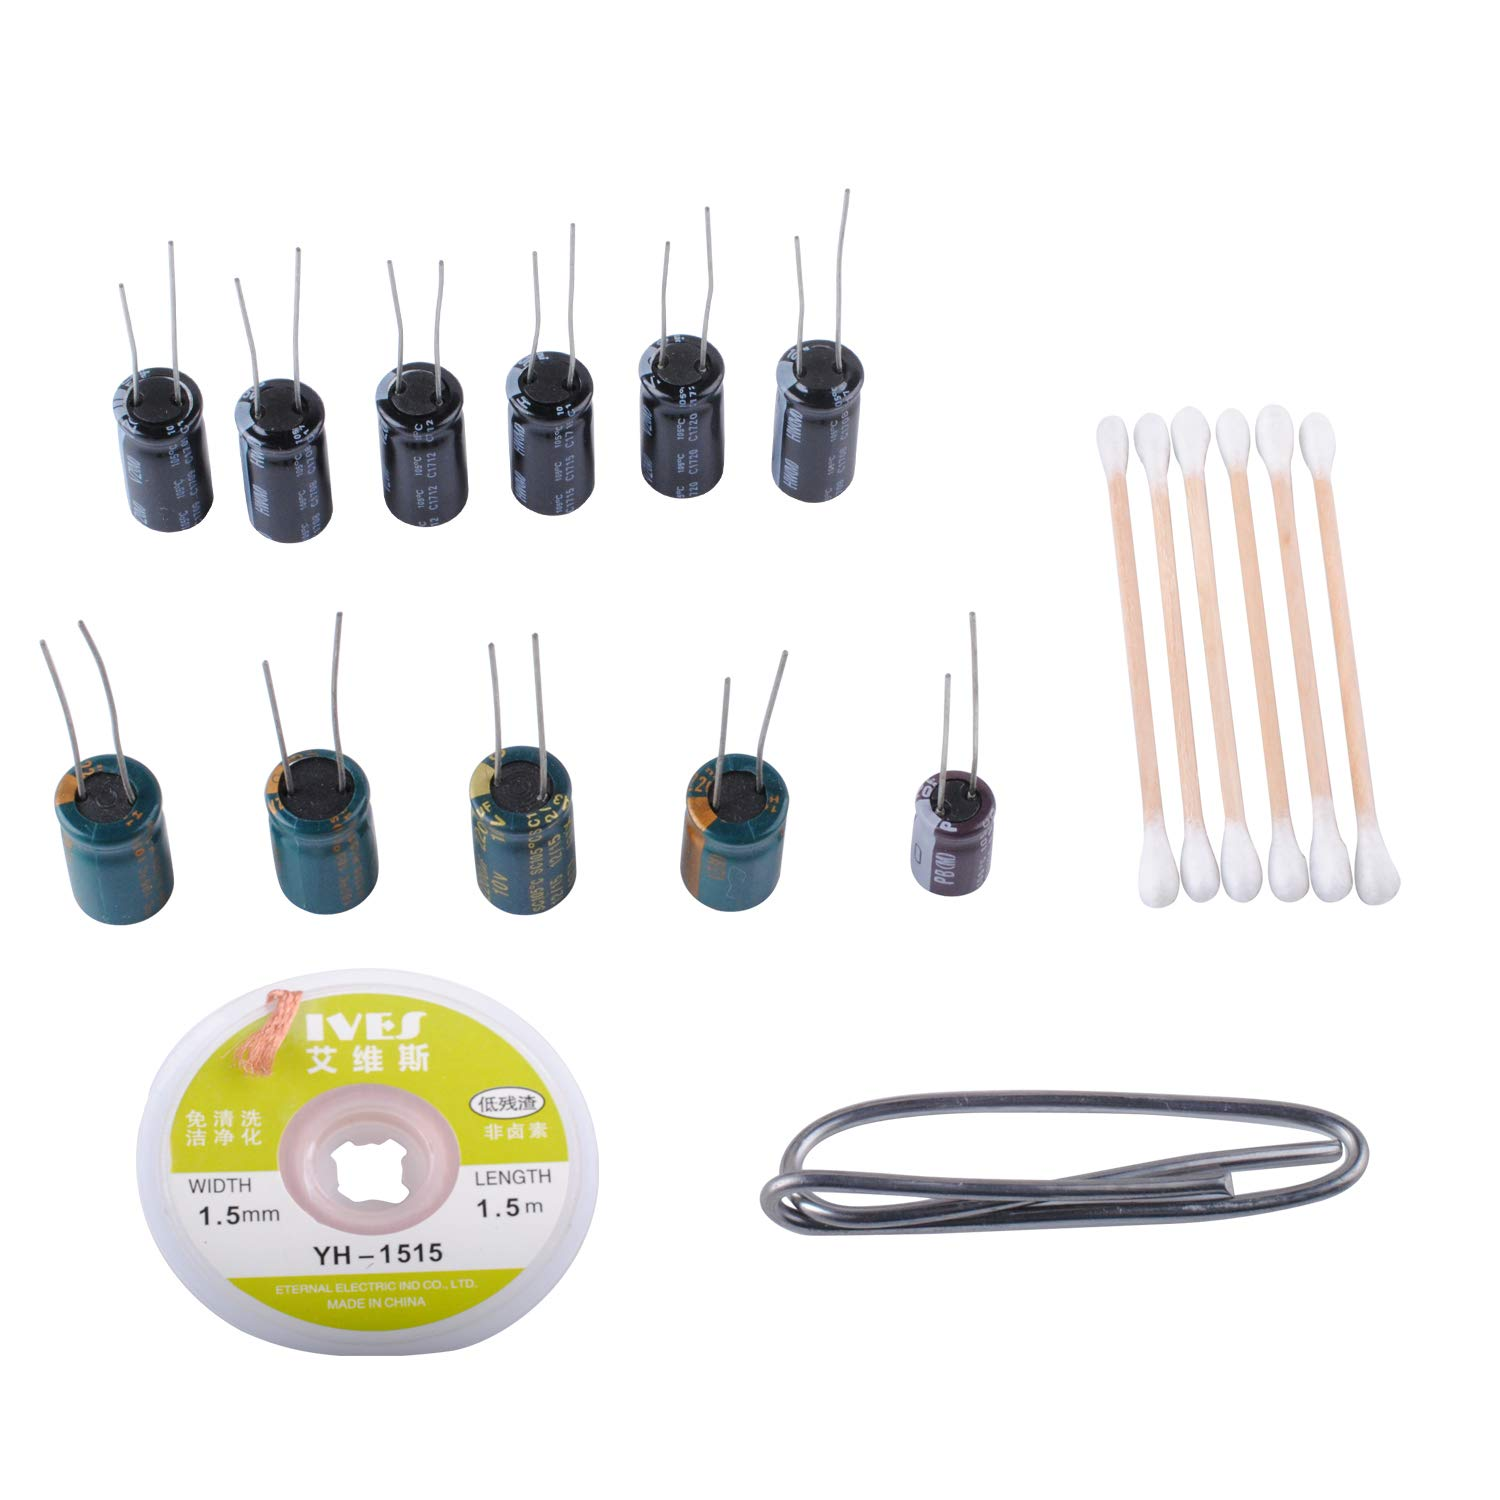 Replace Samsung Lcd Plasma Tv Capacitor Repair Kit 1000uf 25v6 What Device Is Used To Check Capacitors In Electronic Circuits Pieces 2200uf 10v4 And 220uf 25v1 Piece Temperature